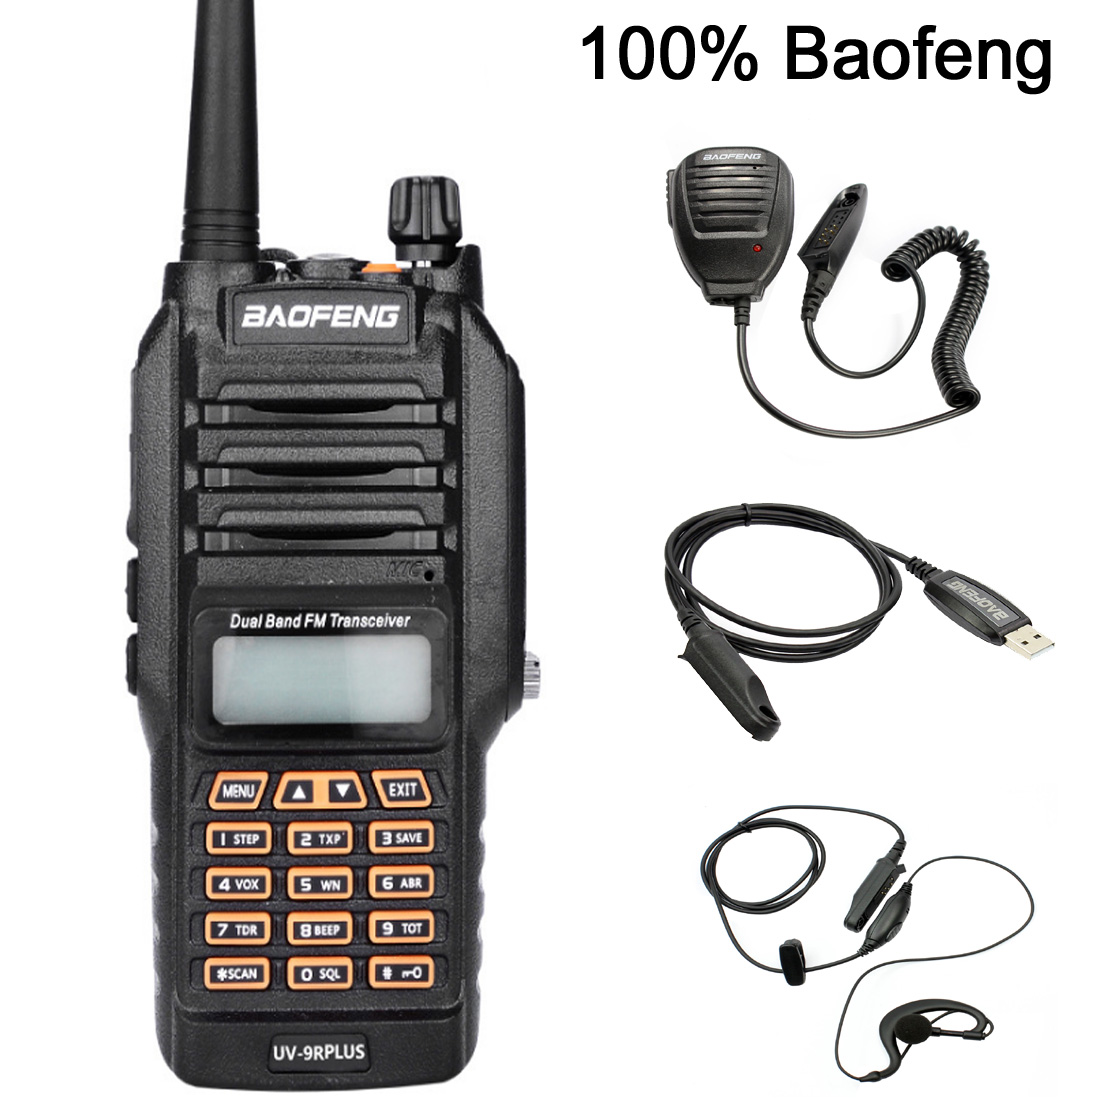 Baofeng UV-9R Plus Waterproof Walkie Talkie 5W Powerful Two Way Radio Dual Band Handheld 10km Long Range UV9R CB Portable Radio